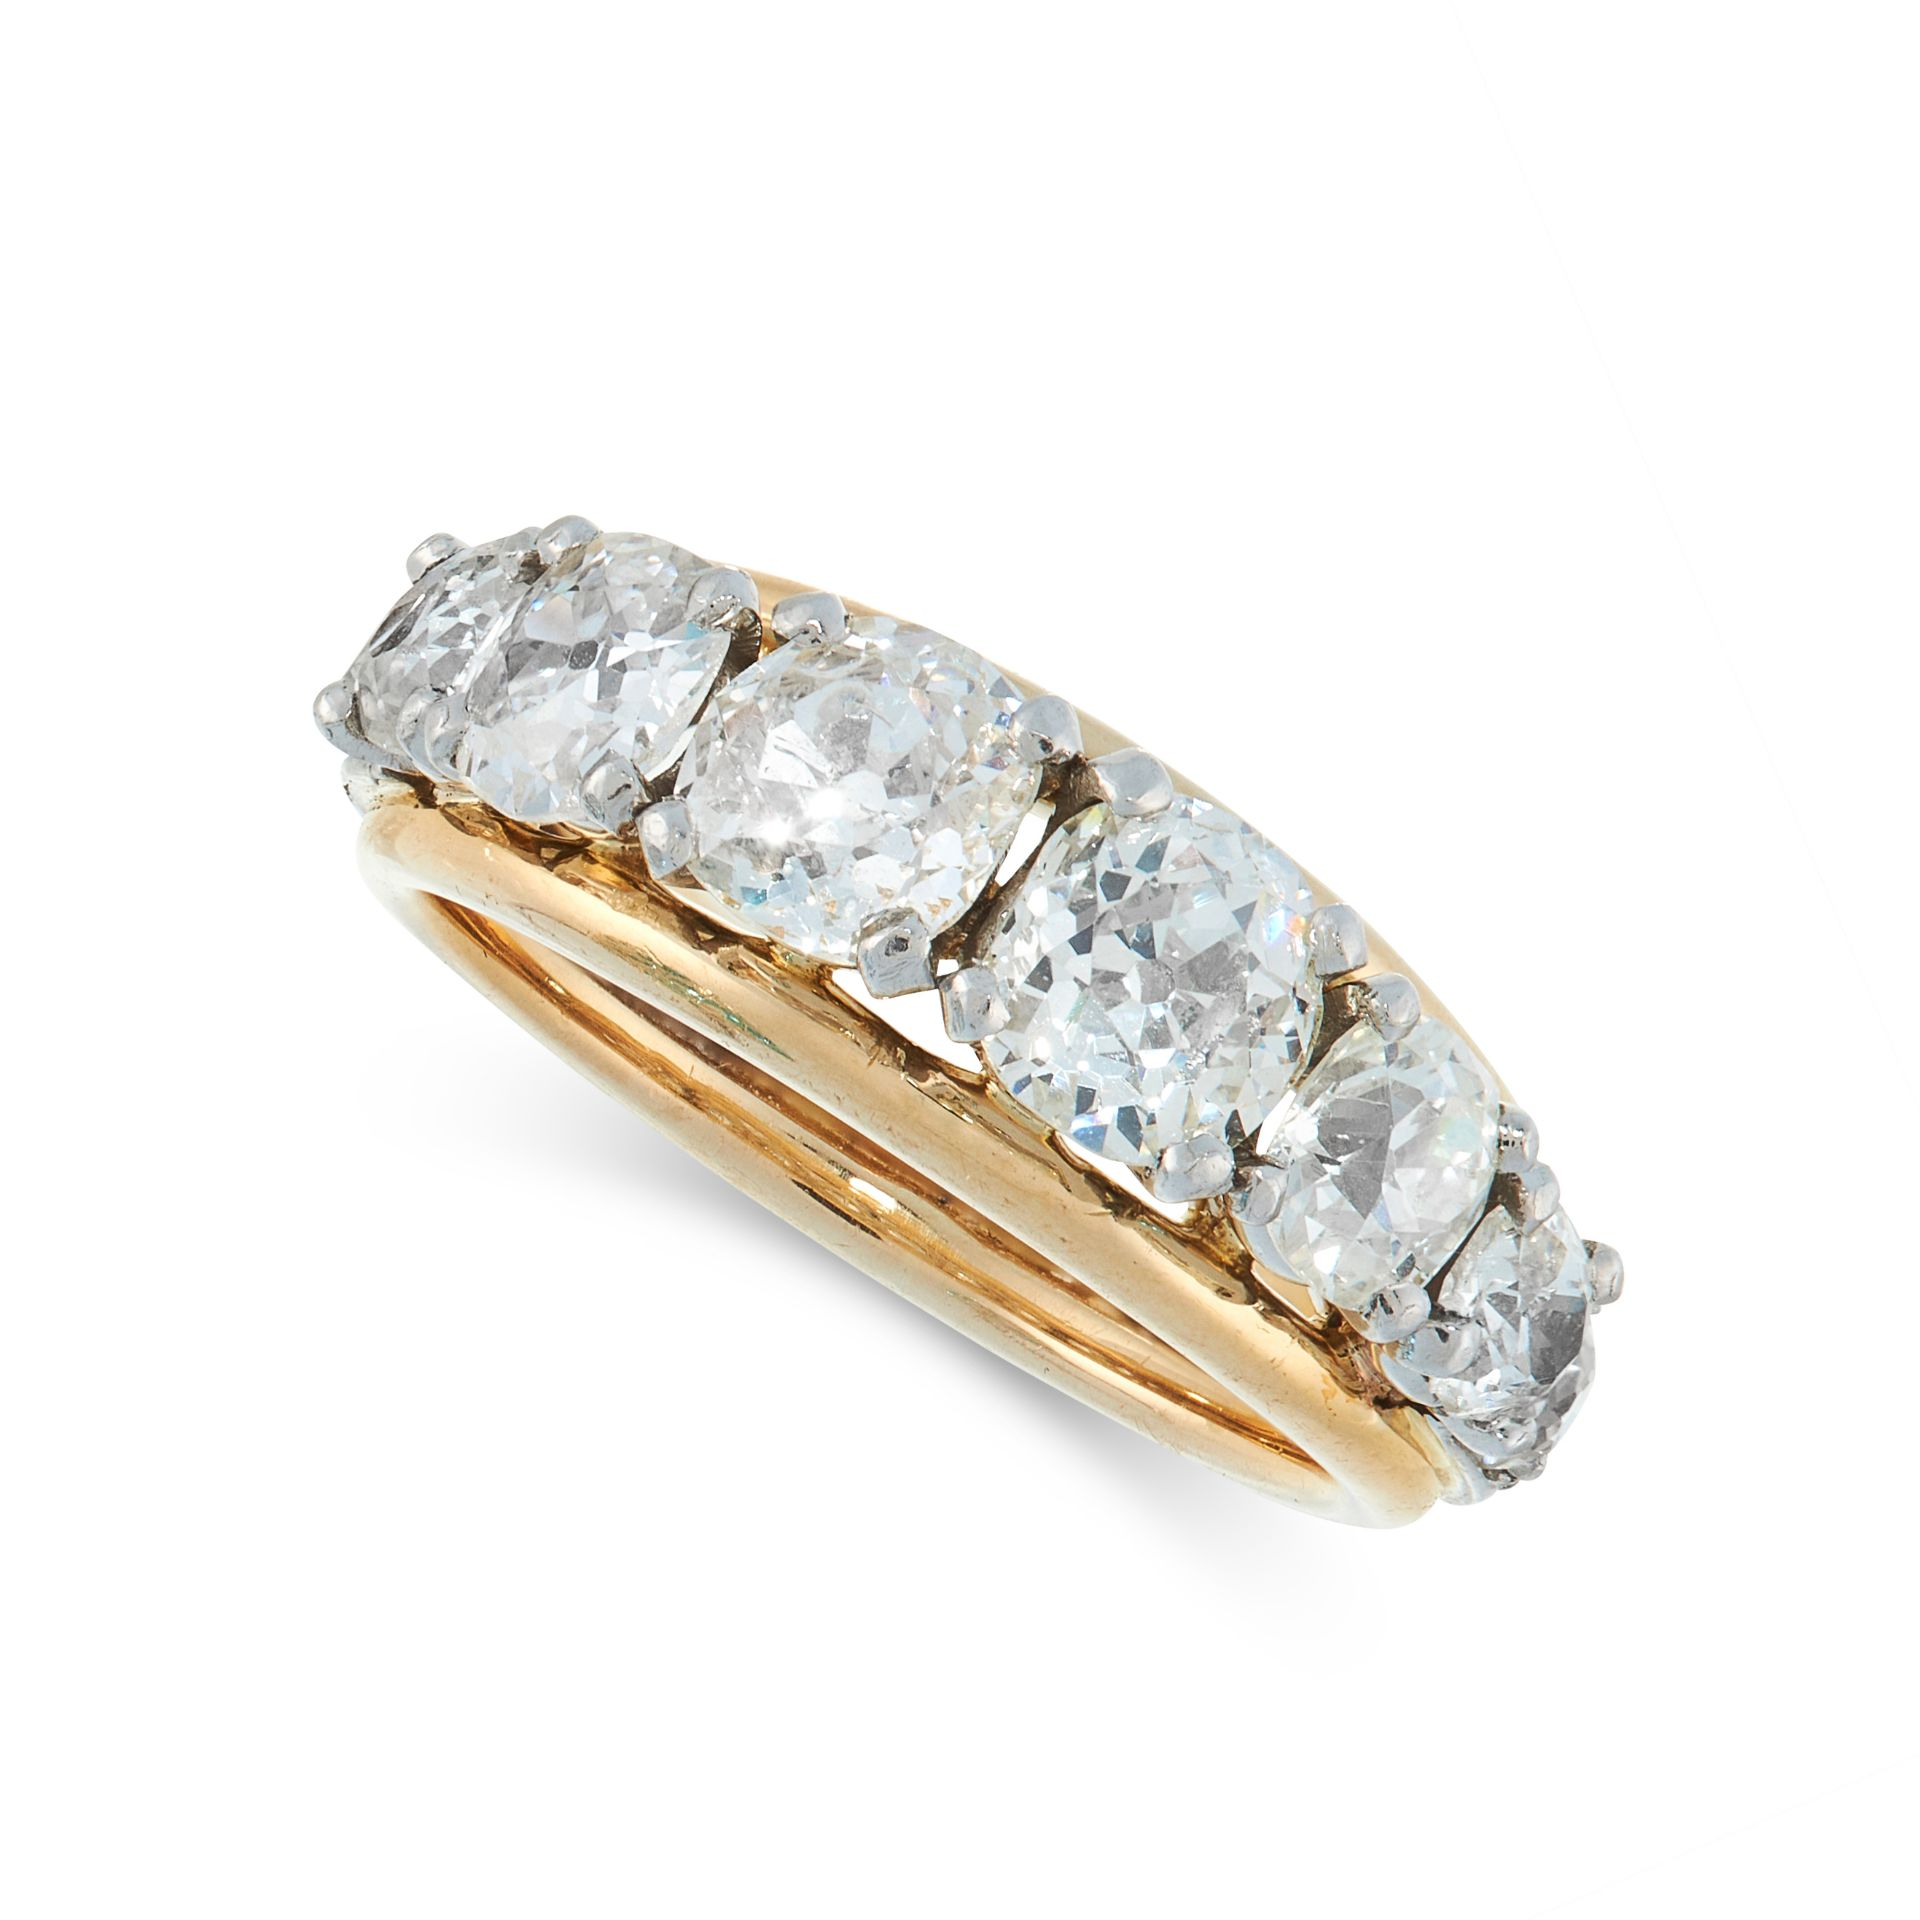 A DIAMOND DRESS RING in yellow and white gold, the tapering band set with twelve graduated old cut